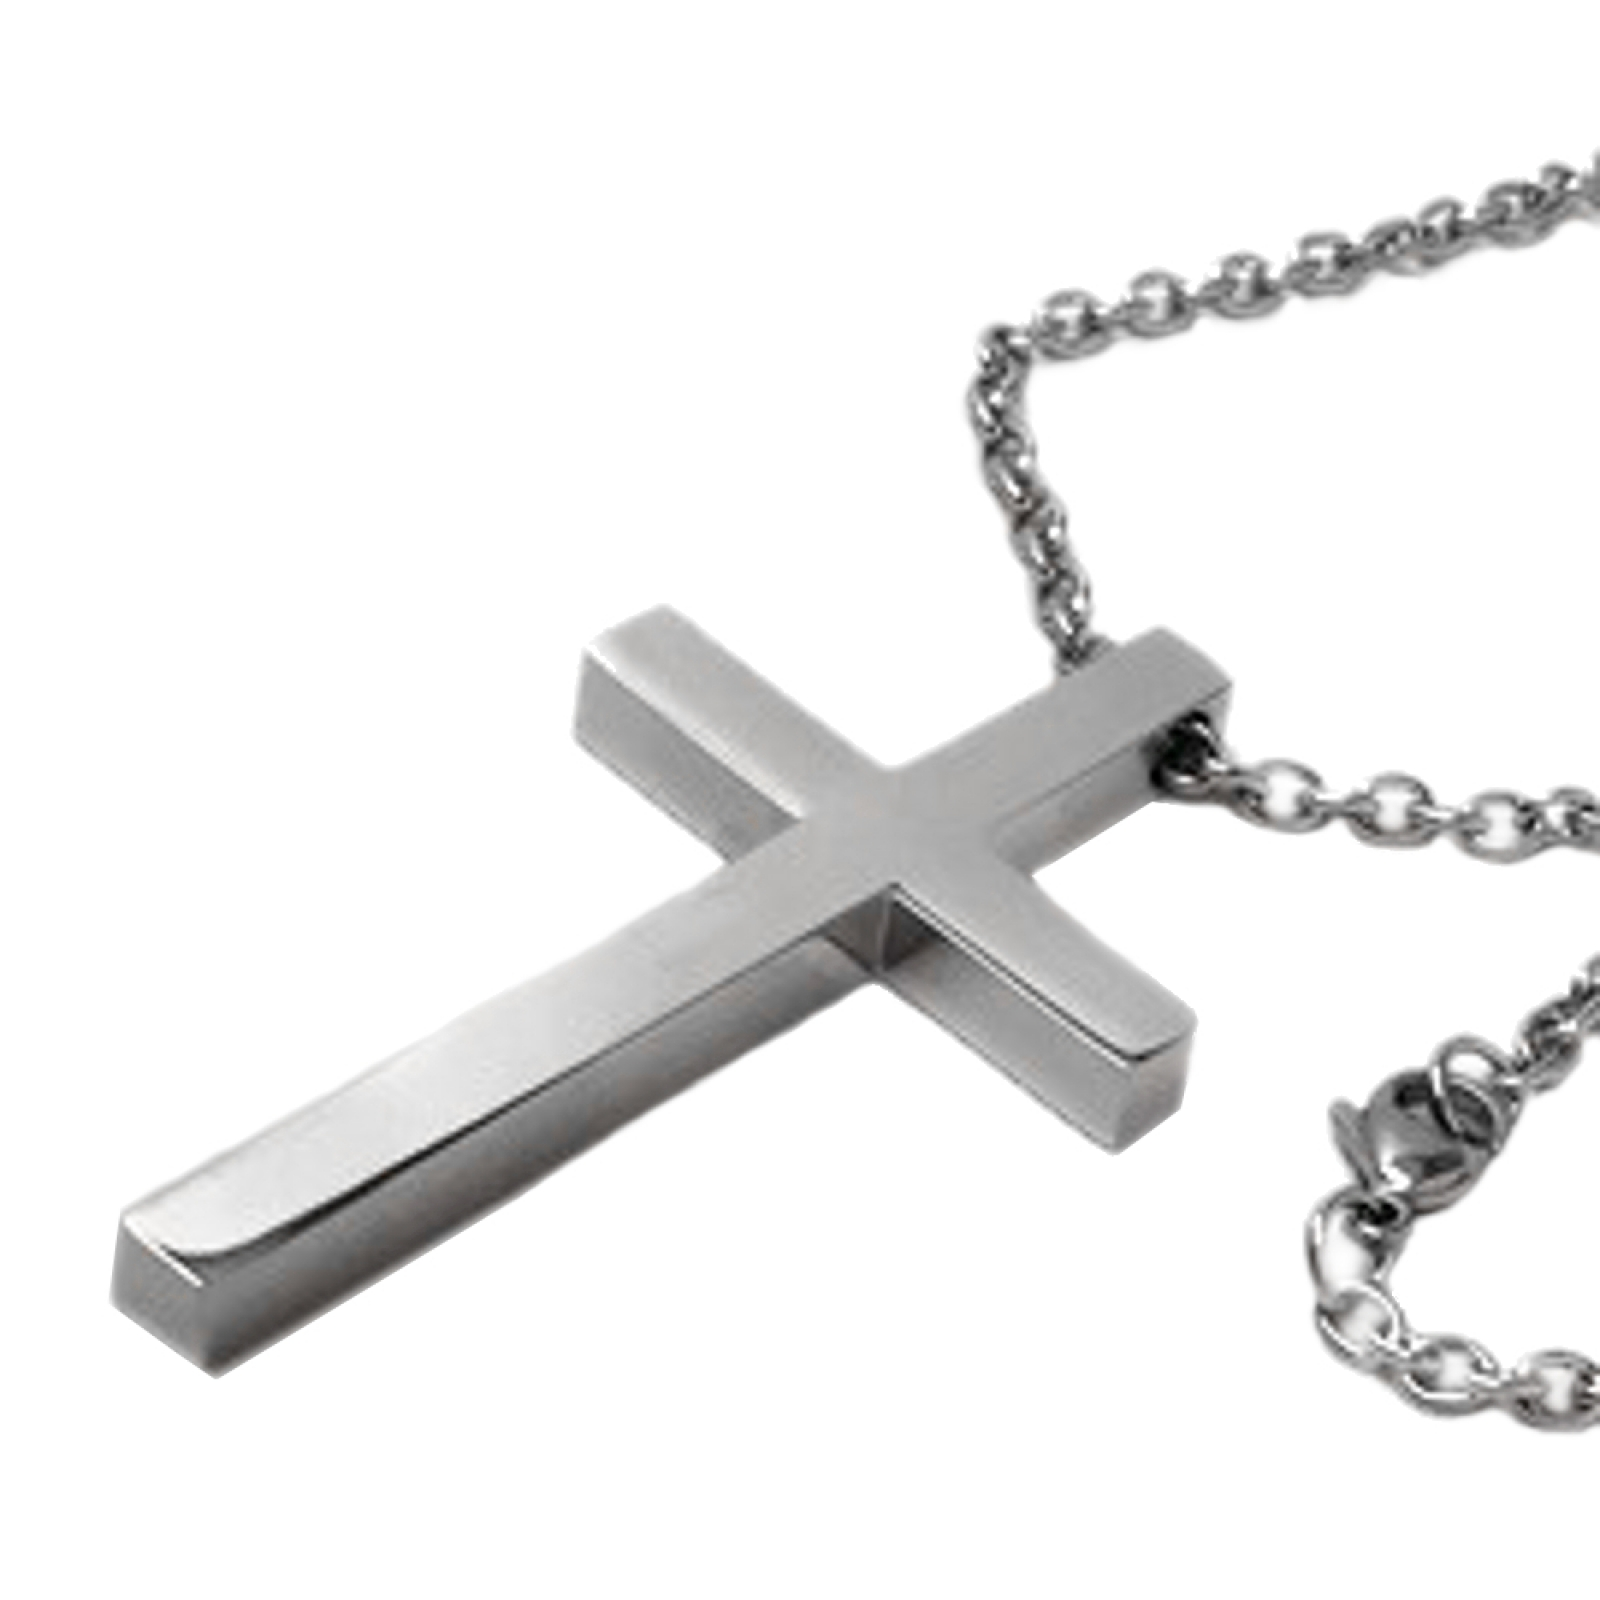 Modern mens trendy christian jewelry steel cross pendant necklace large plain silver titanium religious cross necklace for him aloadofball Choice Image